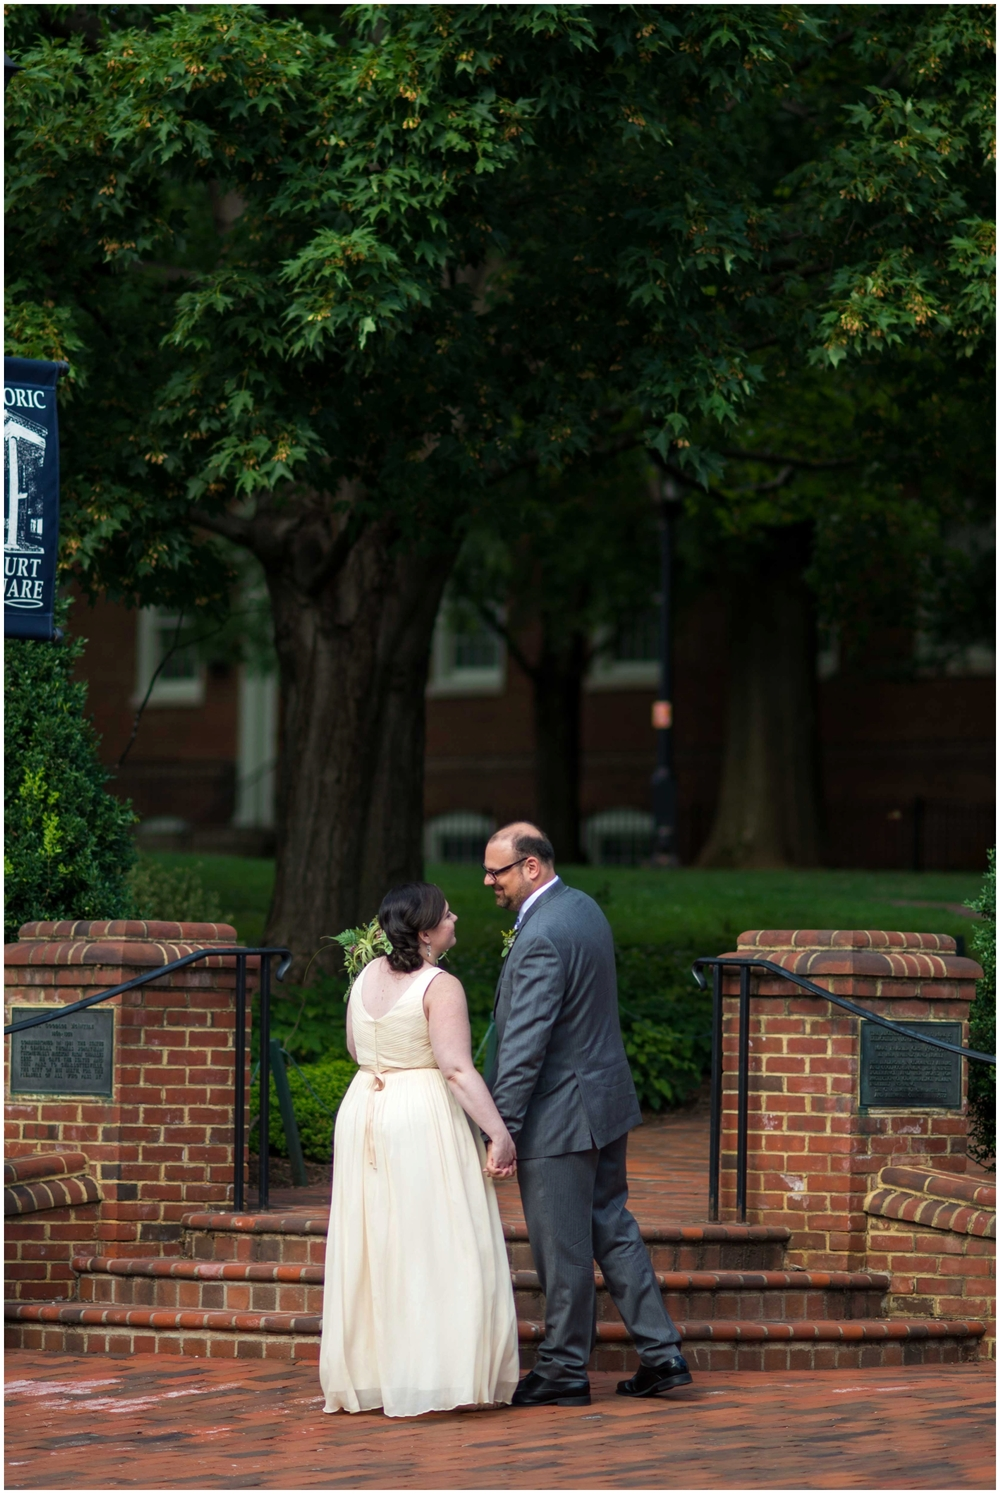 Dominic&JessicaWedding-248.jpg